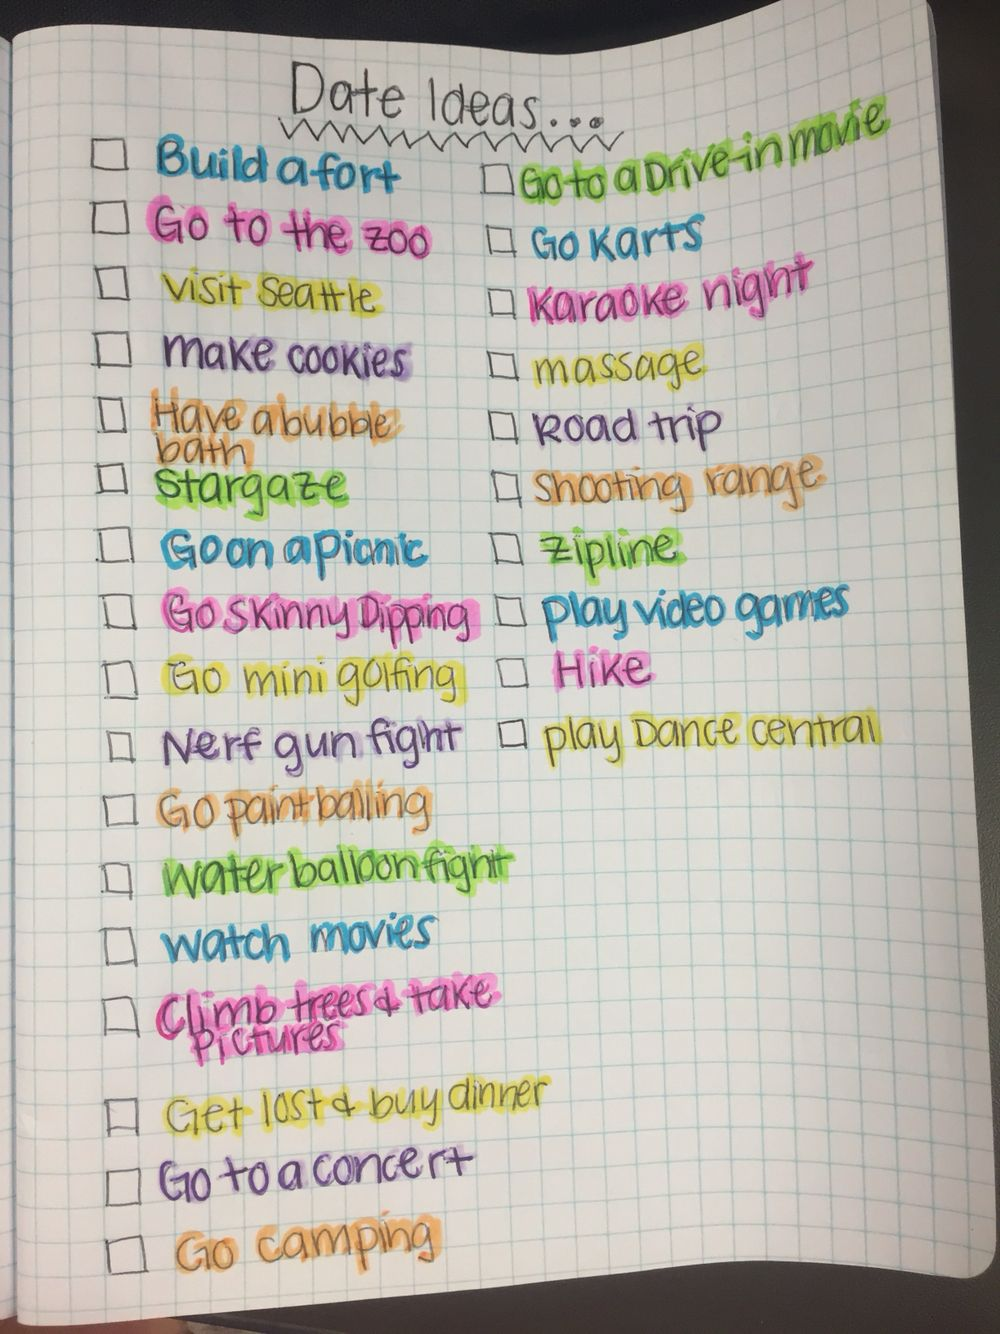 Date Ideas Cute Date Ideas Cheap Date Ideas Couples Things To Do